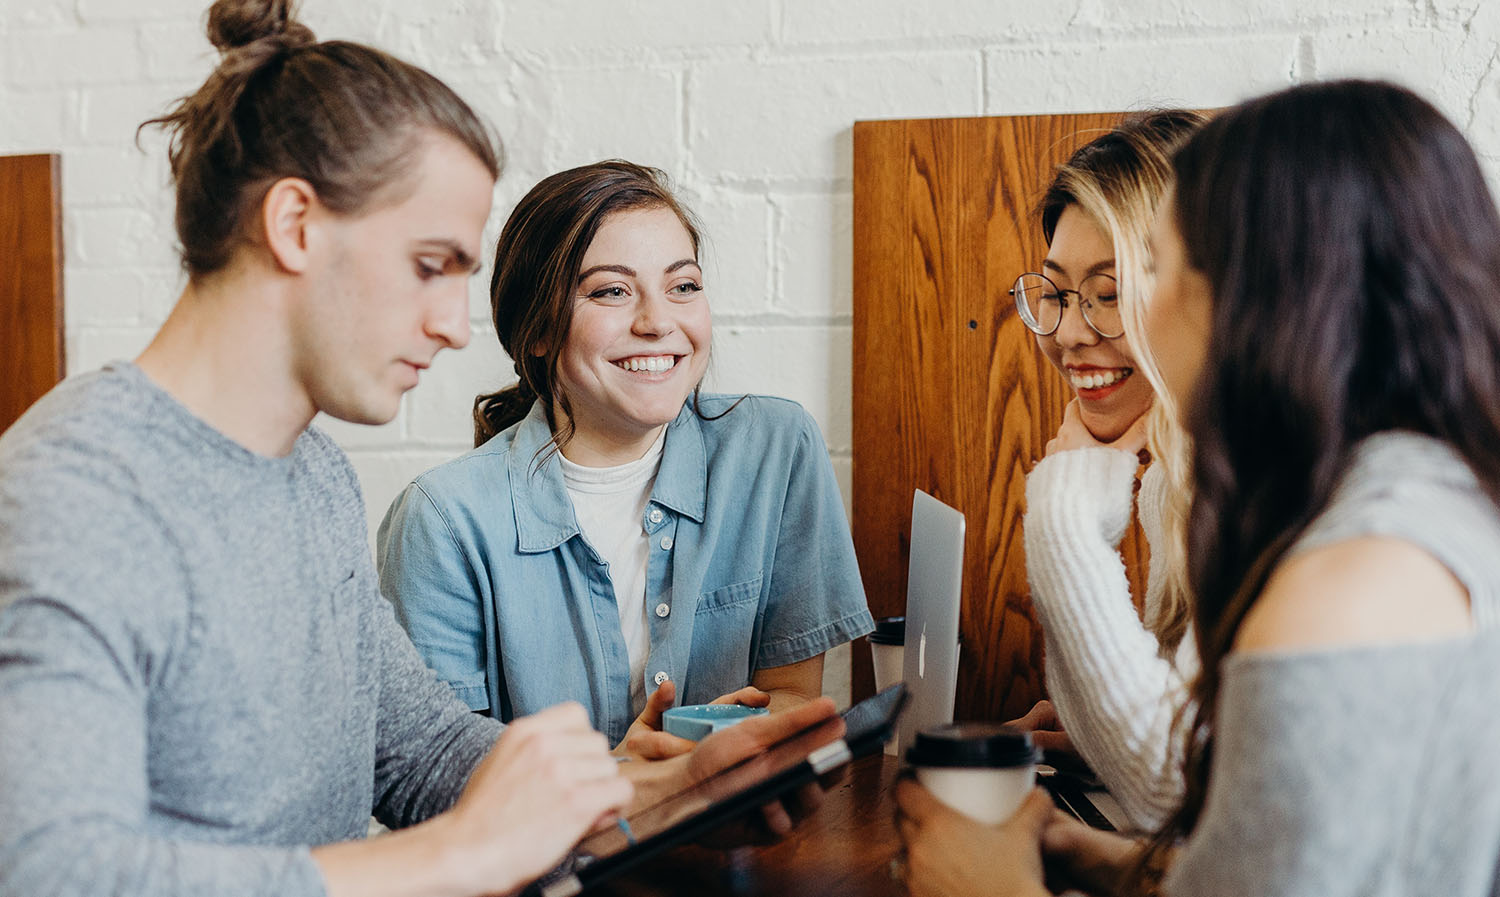 Image of students studying and smiling together at a desk space.